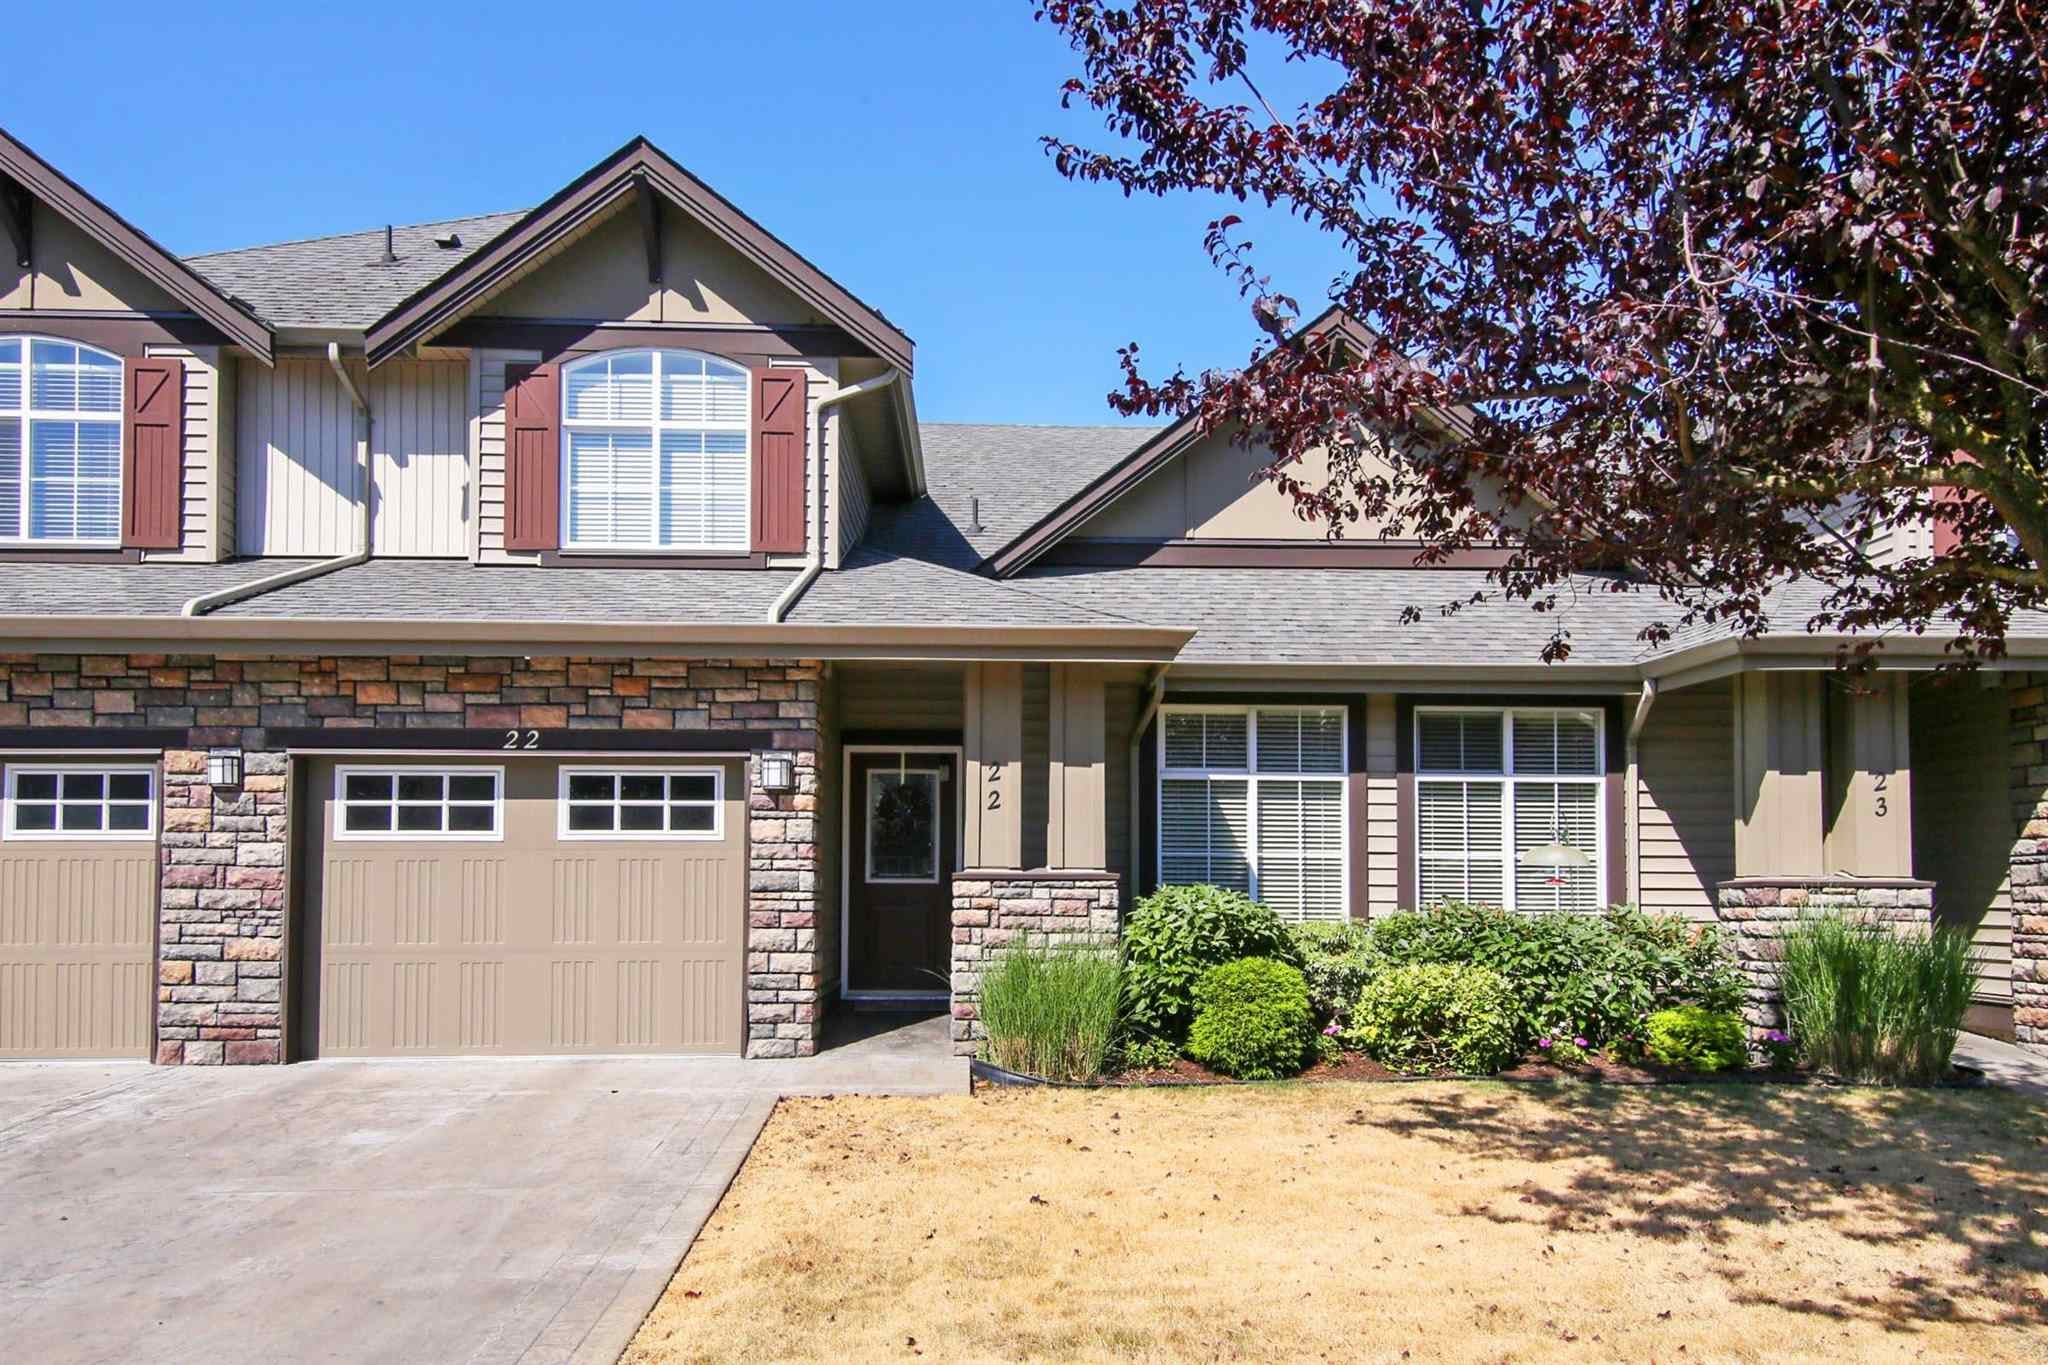 22 6577 SOUTHDOWNE PLACE - Sardis East Vedder Rd Townhouse for sale, 3 Bedrooms (R2604431) - #1